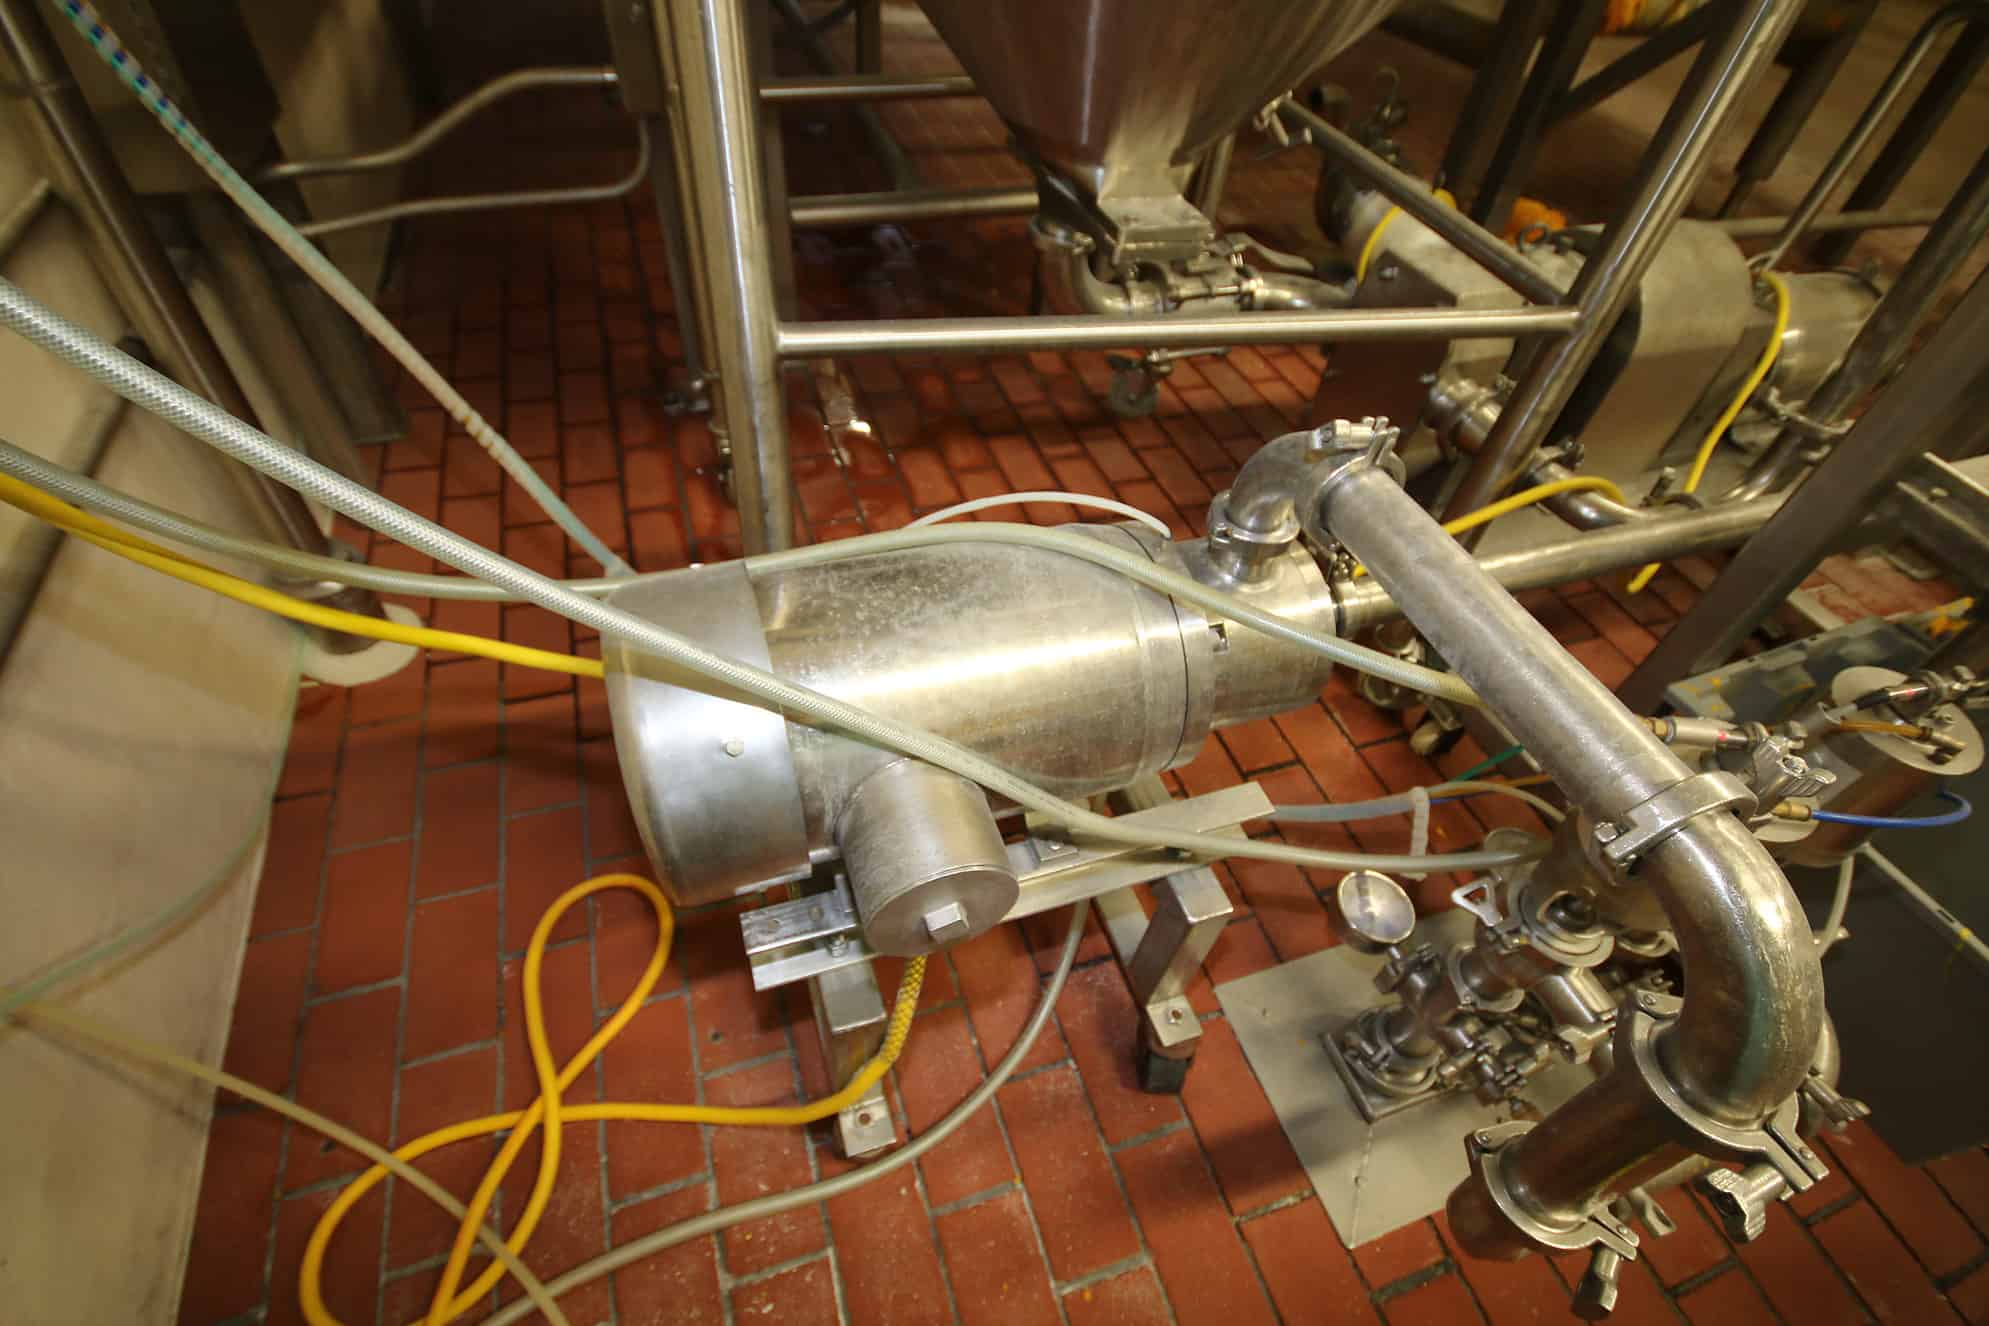 Hot System IWS Blending System includes